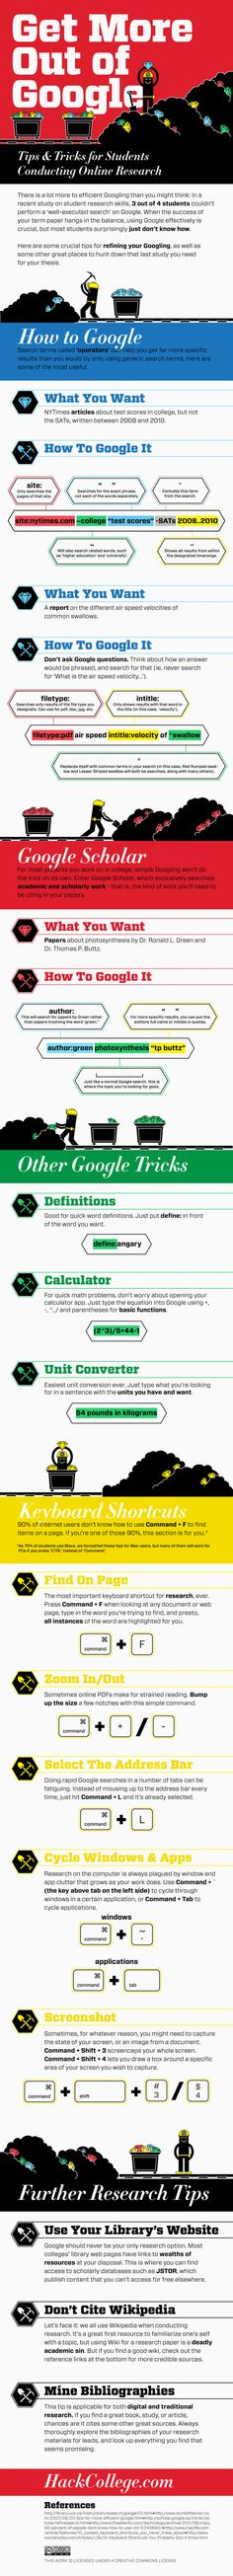 This infographic about getting more out of Google is such a great research helper.